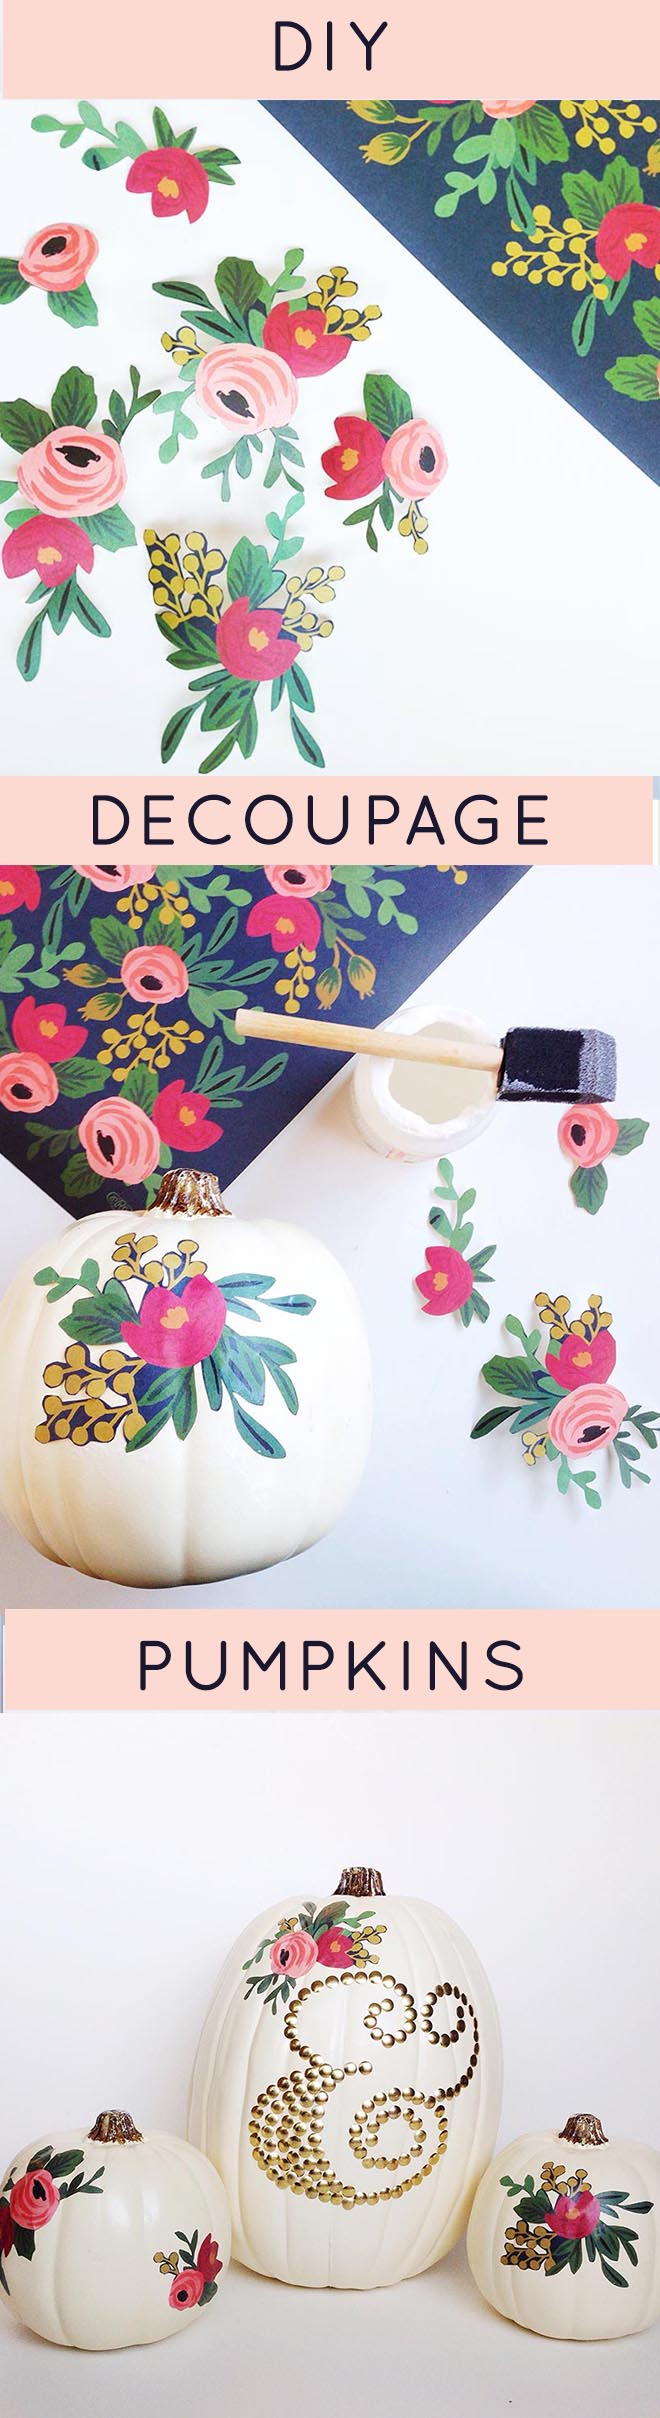 DIY Decoupage Pumpkins would be beautiful as a Thanksgiving centerpiece or as fall wedding decor.